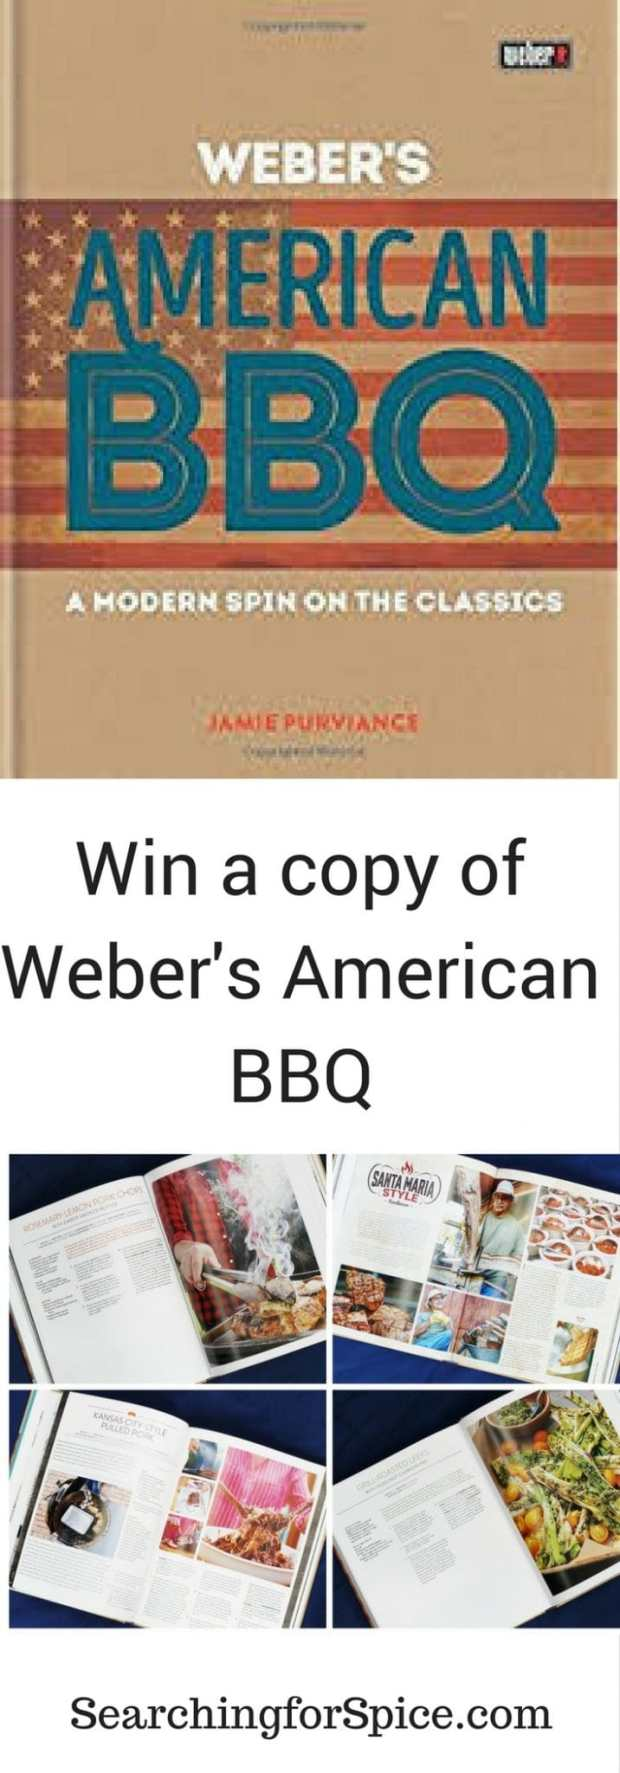 Uk giveaway win a copy of Weber's American BBQ. competition ends 17 April 2017